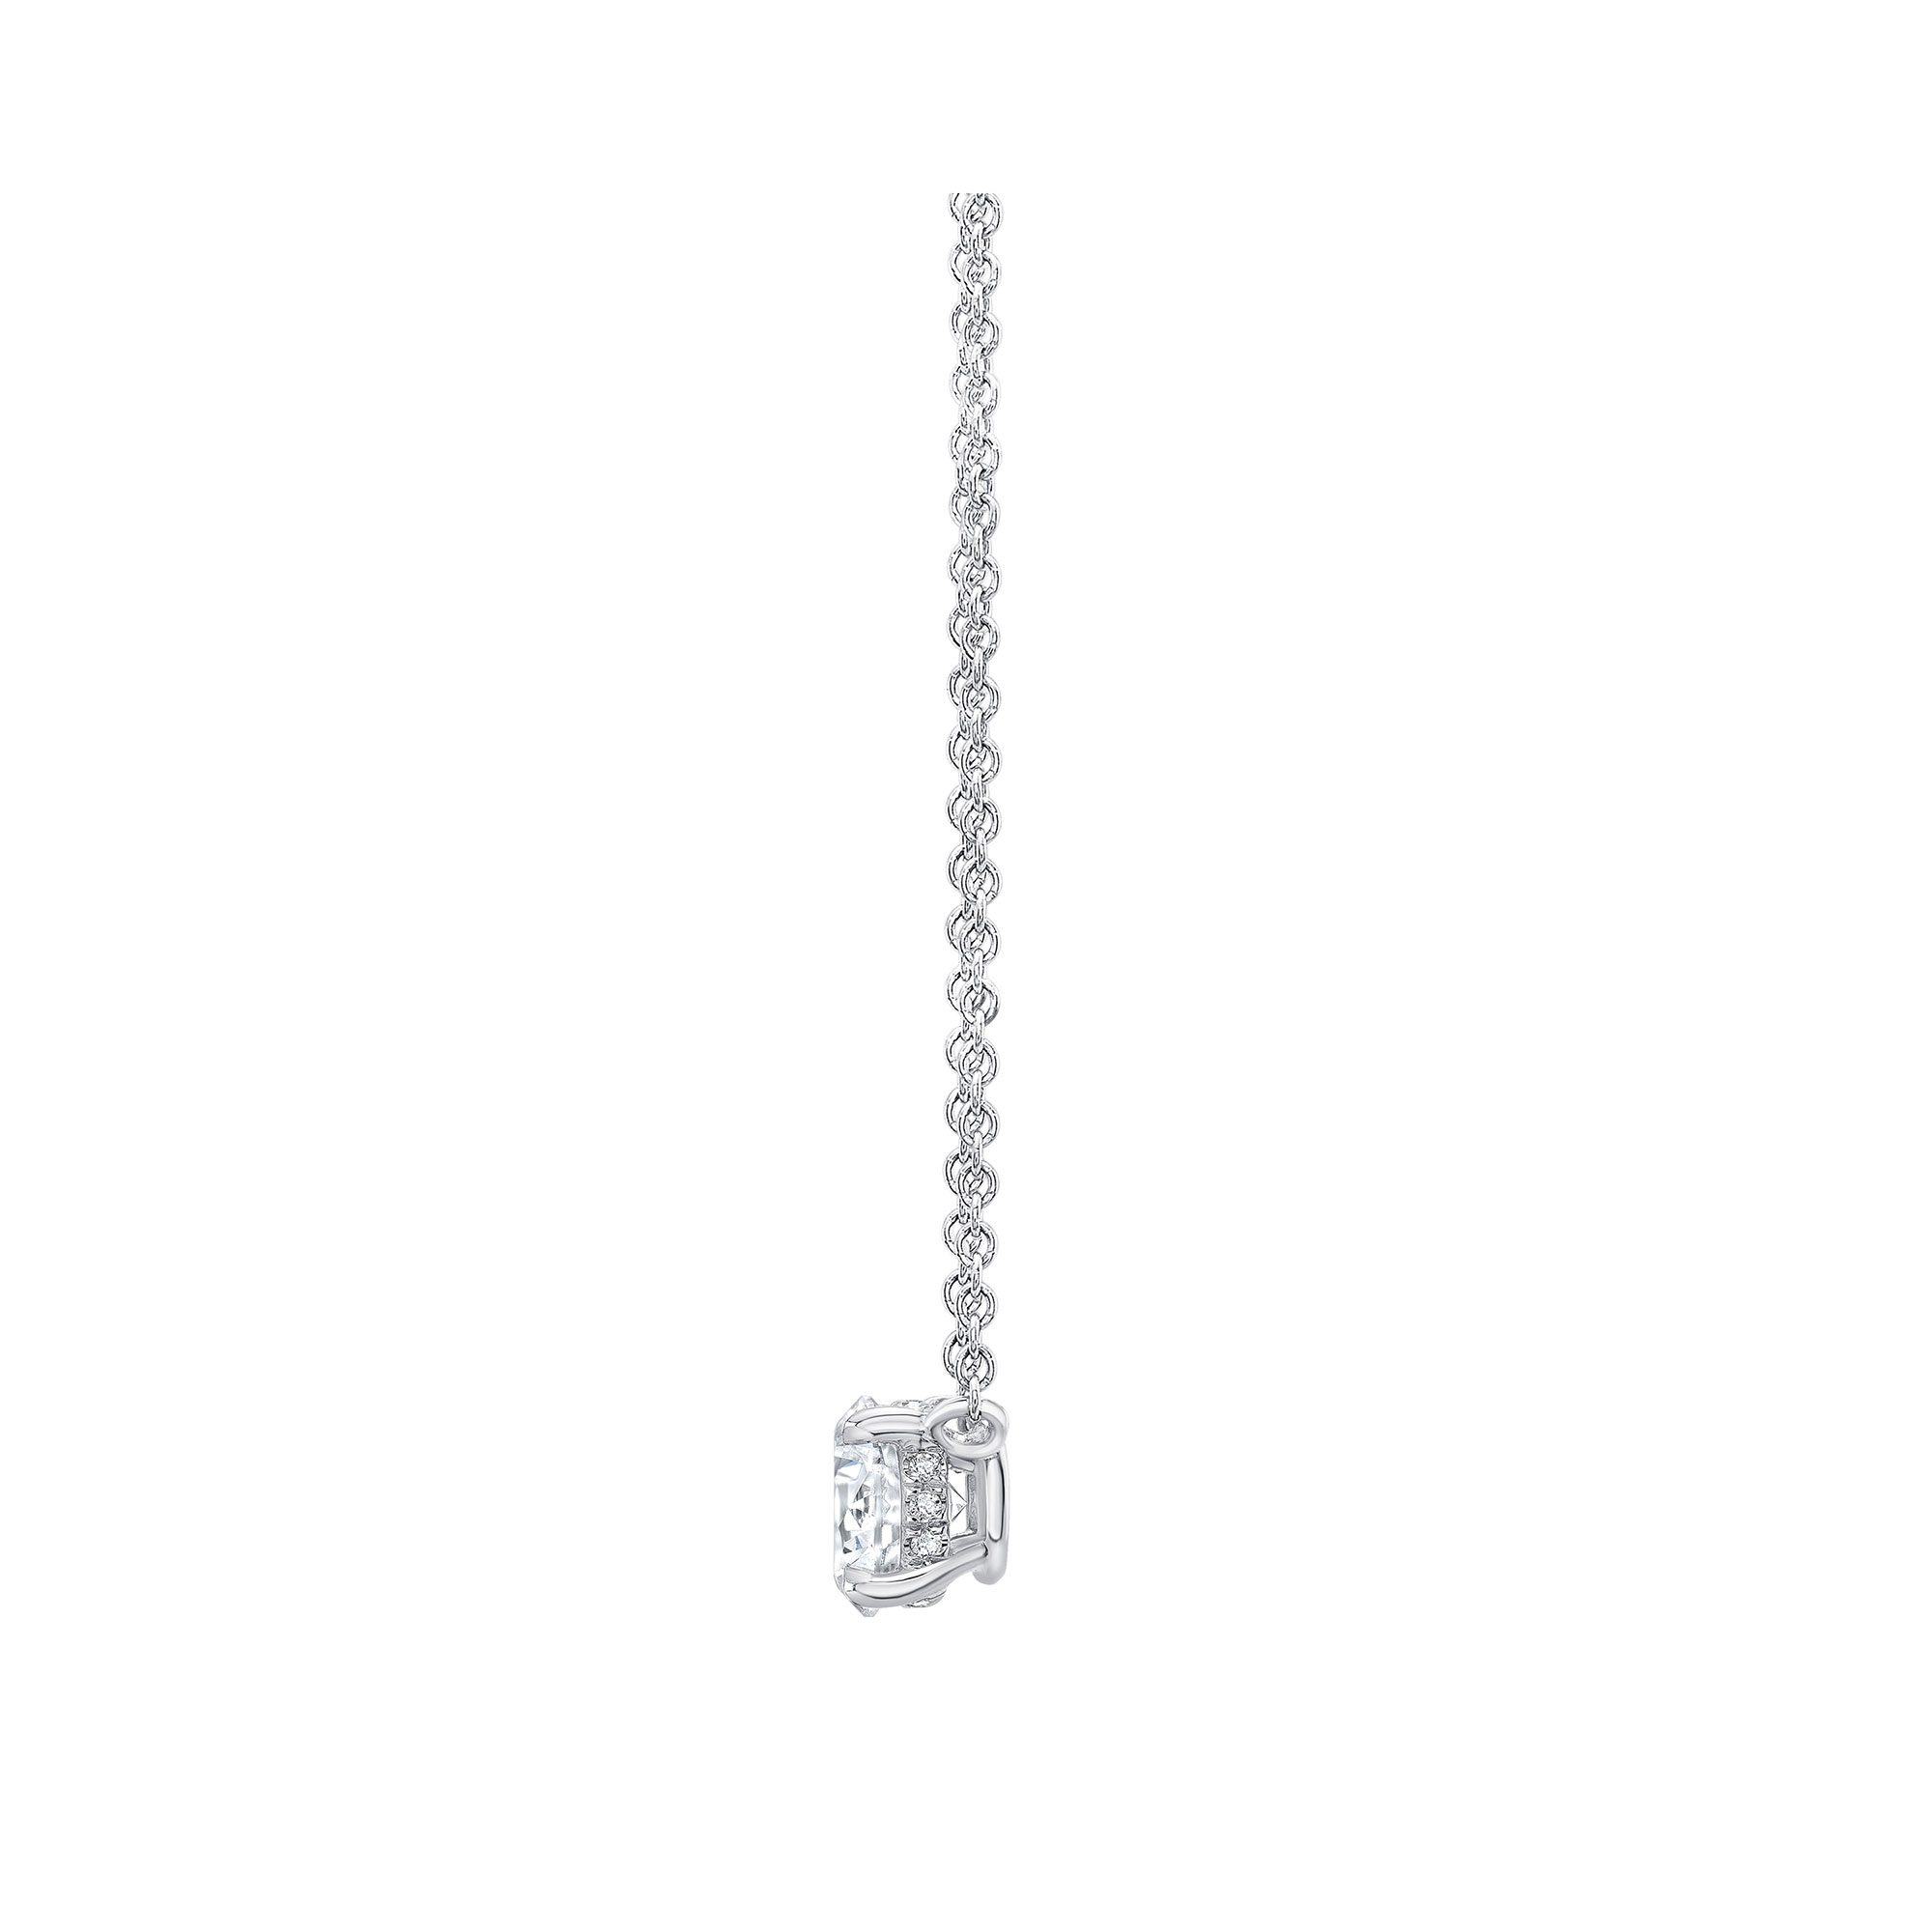 Marie Round Brilliant 2 Carat Lab Grown Diamond Necklace Side View in White Gold